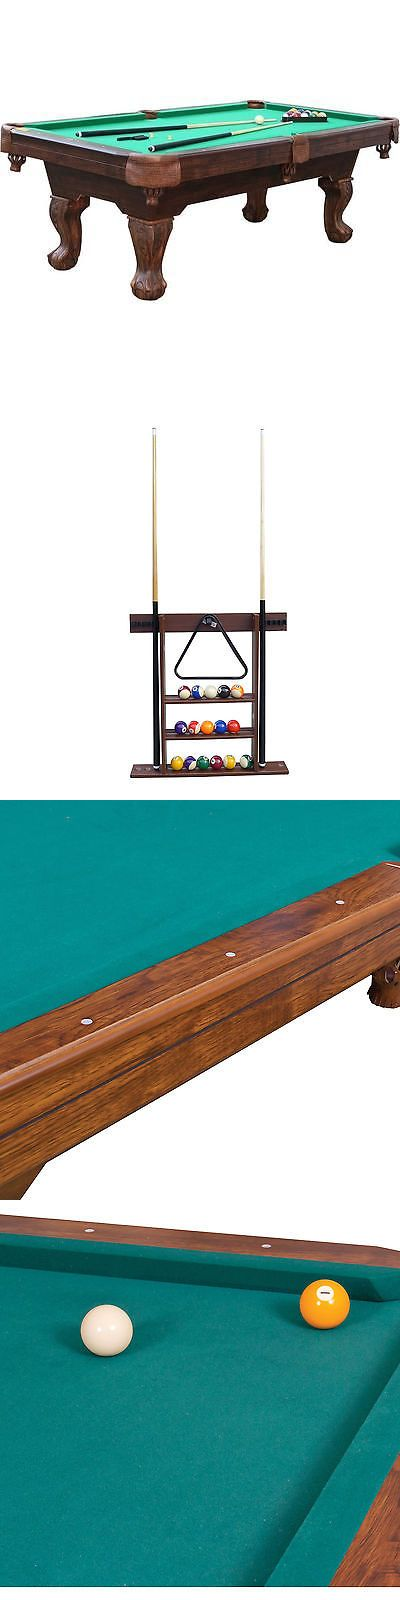 Tables 21213: Billiard Pool Table 7.5 89 Sportcraft Springdale Scratch-Resistant Complete -> BUY IT NOW ONLY: $849 on eBay!